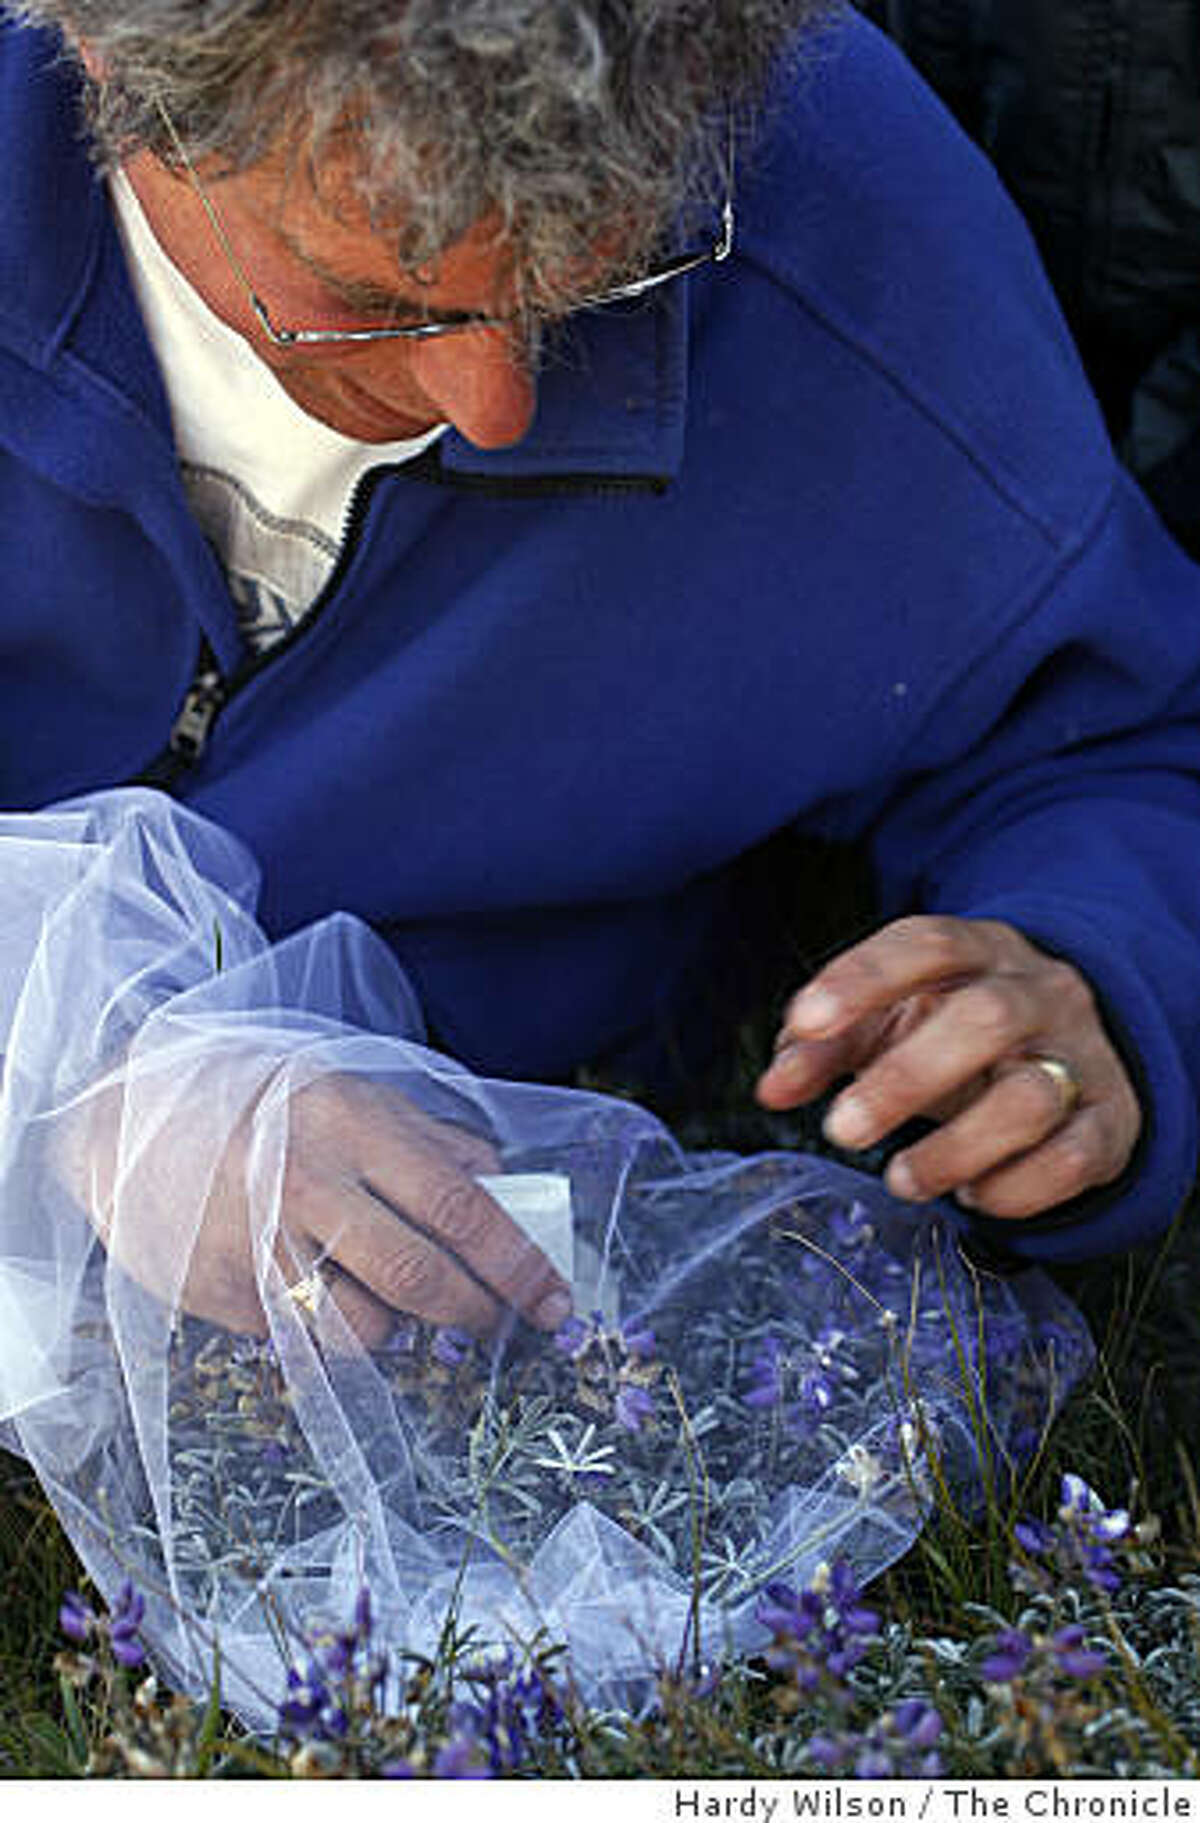 Biologist Stu Weiss releases a Mission blue butterfly into a net filled with silver lupine flowers on Twin Peaks in San Francisco, Calif., on Thursday, April 16, 2009. Members of San Francisco's Recreation and Park Department along with the U.S. Fish and Wildlife Service are trying to reintroduce the butterfly, an endangered species, back to the area.